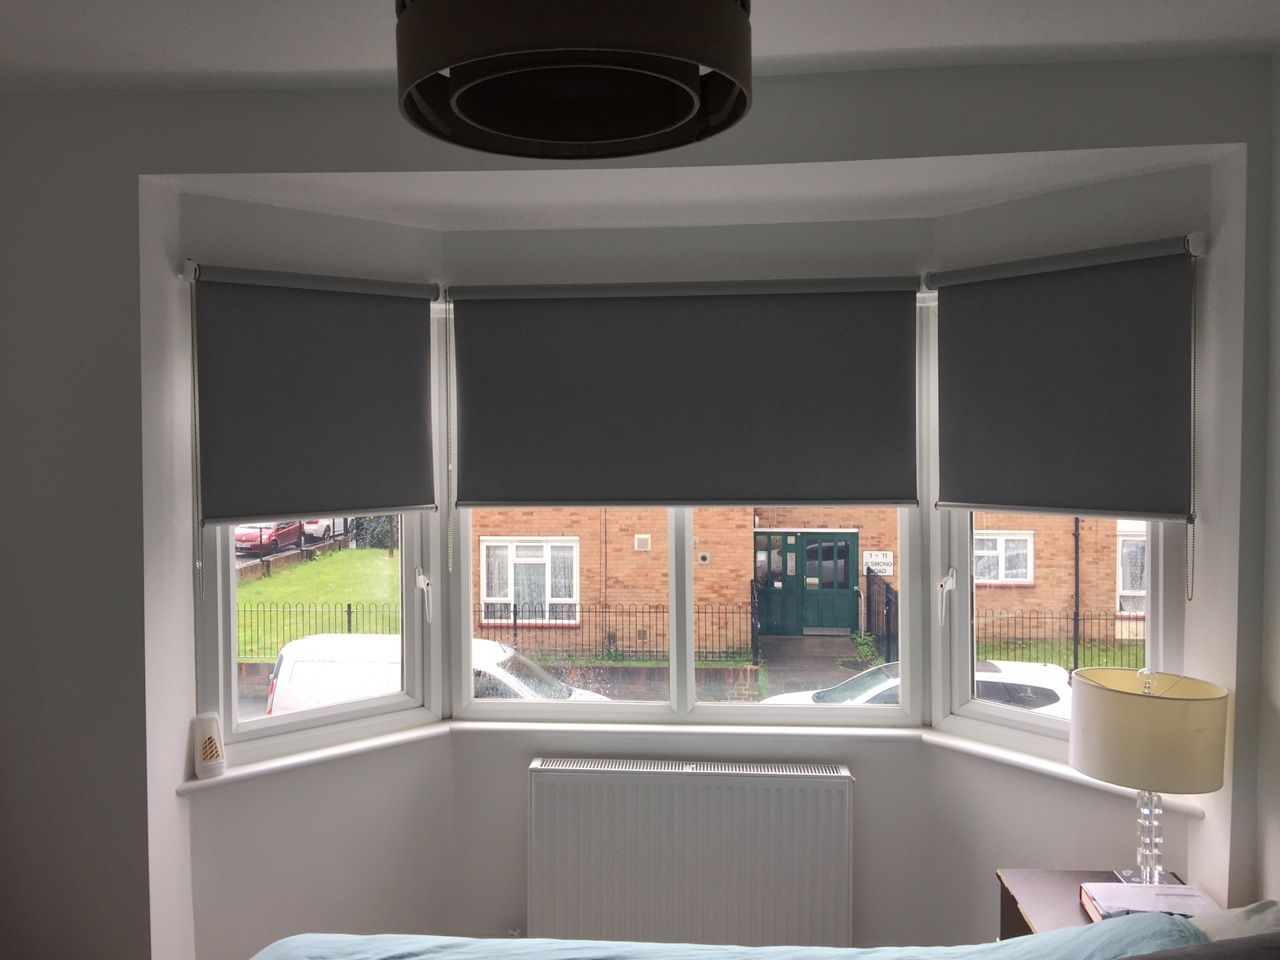 Made To Measure Blackout Roller Blinds Installed For A